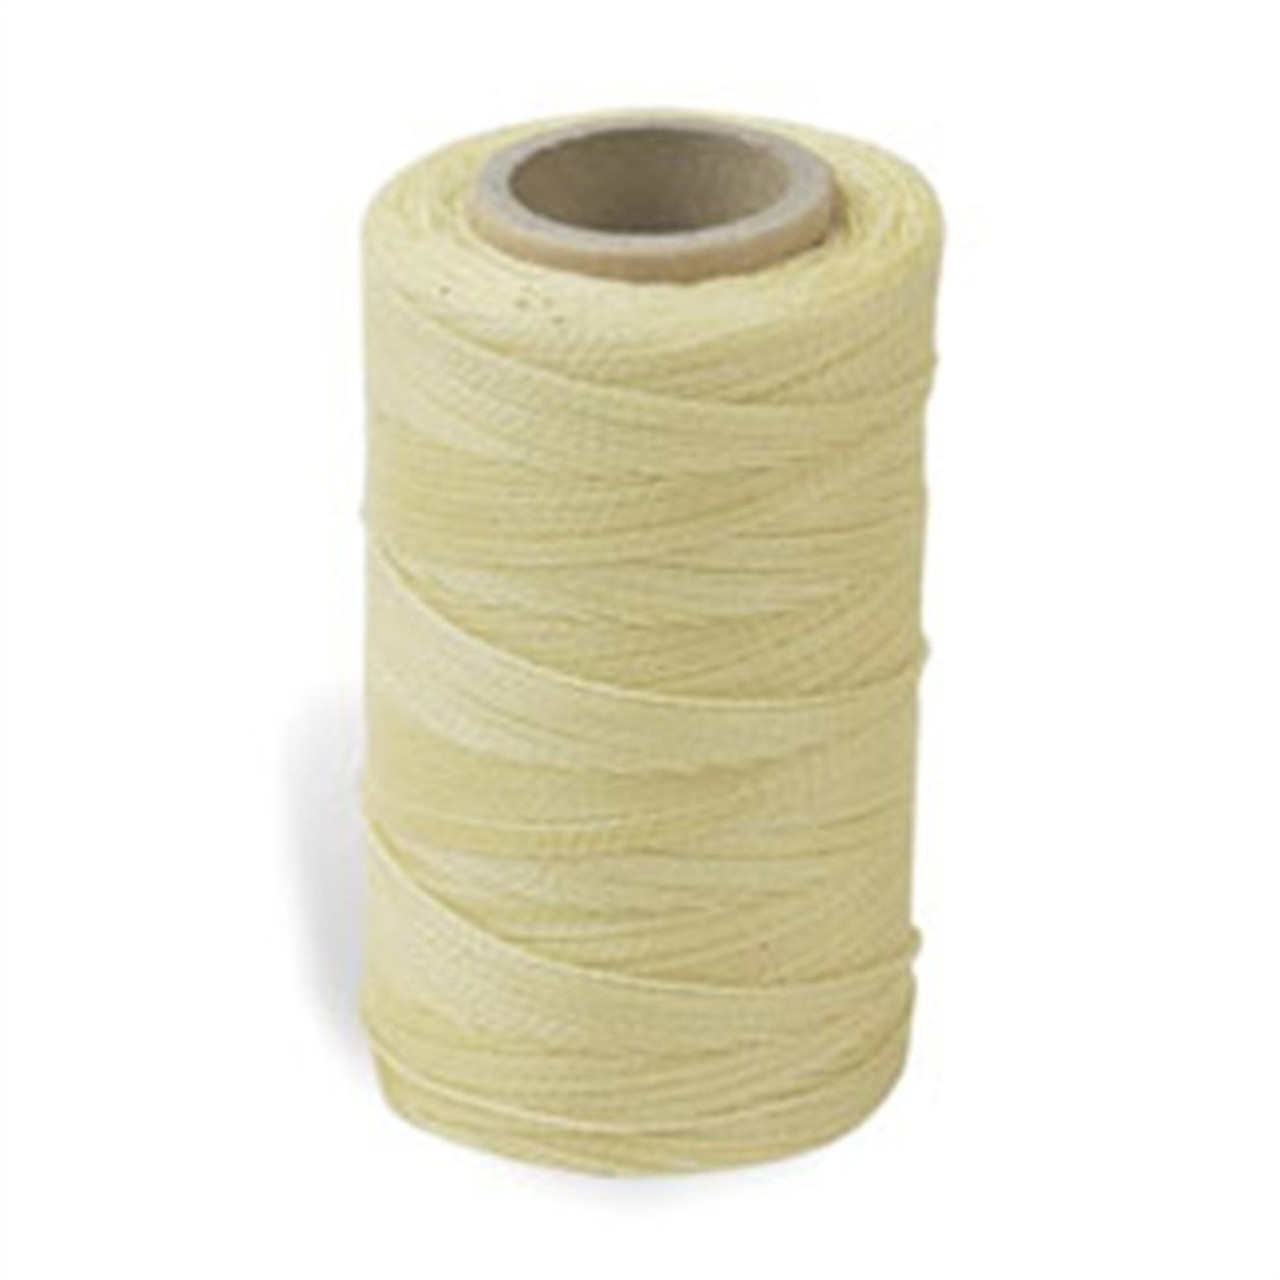 247 m Natural 1205-04 Tandy Leather Sewing Awl Thread 270 yds